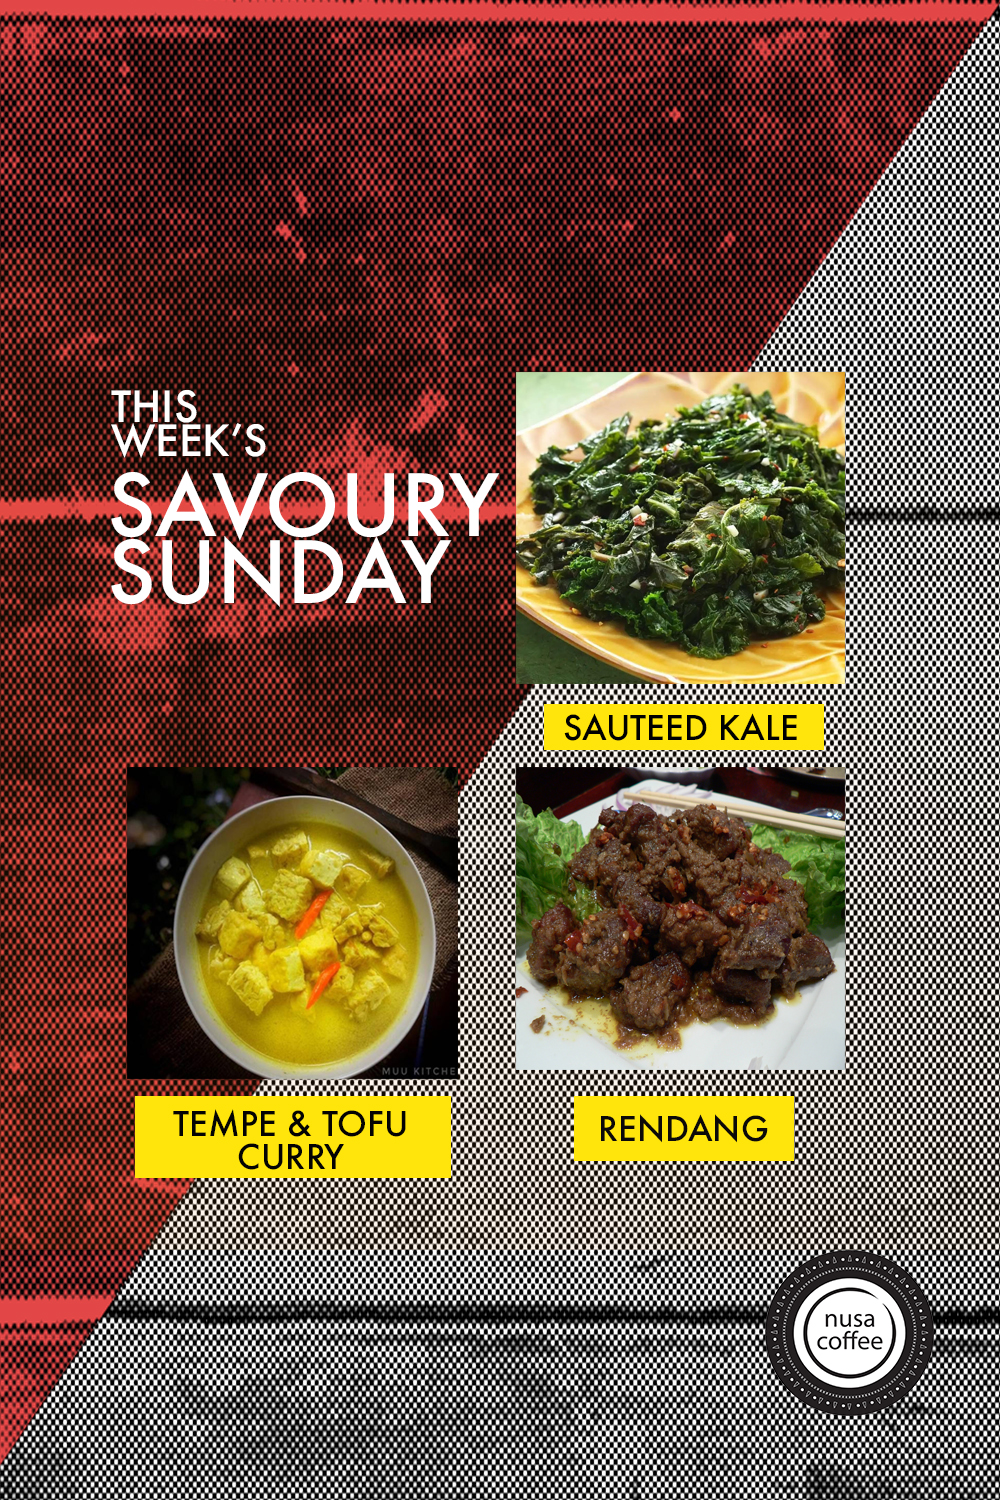 As part of our goal in promoting Indonesian cuisine, we are introducing a new weekly culinary experience called; Savoury Sundays. We will be serving a lunch box of different kinds of Indonesian dishes at Nusa Cafe every Sunday. This week's menu consist of Sauteed Kale, Rendang, and Tempe & Tofu Curry!  If you want to reserve this lunch set (due to limited quantity) just drop an email to omar@nusacoffeecompany.com with your name and quantity.